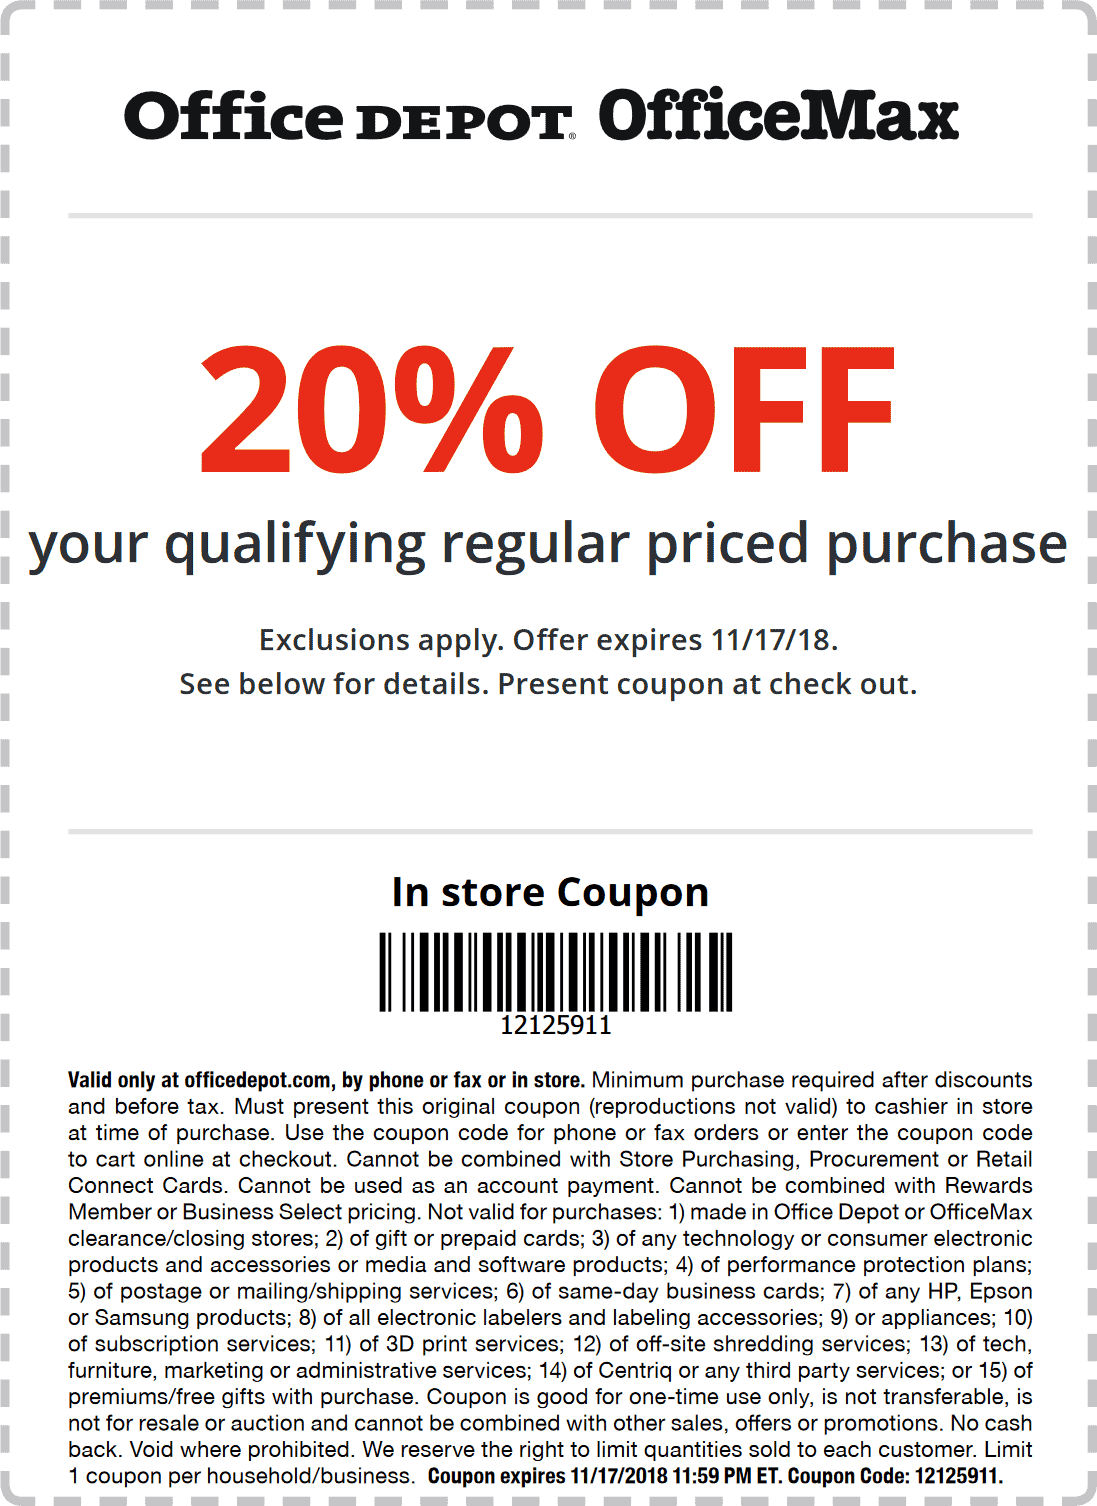 Office Depot Coupon July 2019 20% off at Office Depot & OfficeMax, or online via promo code 12125911